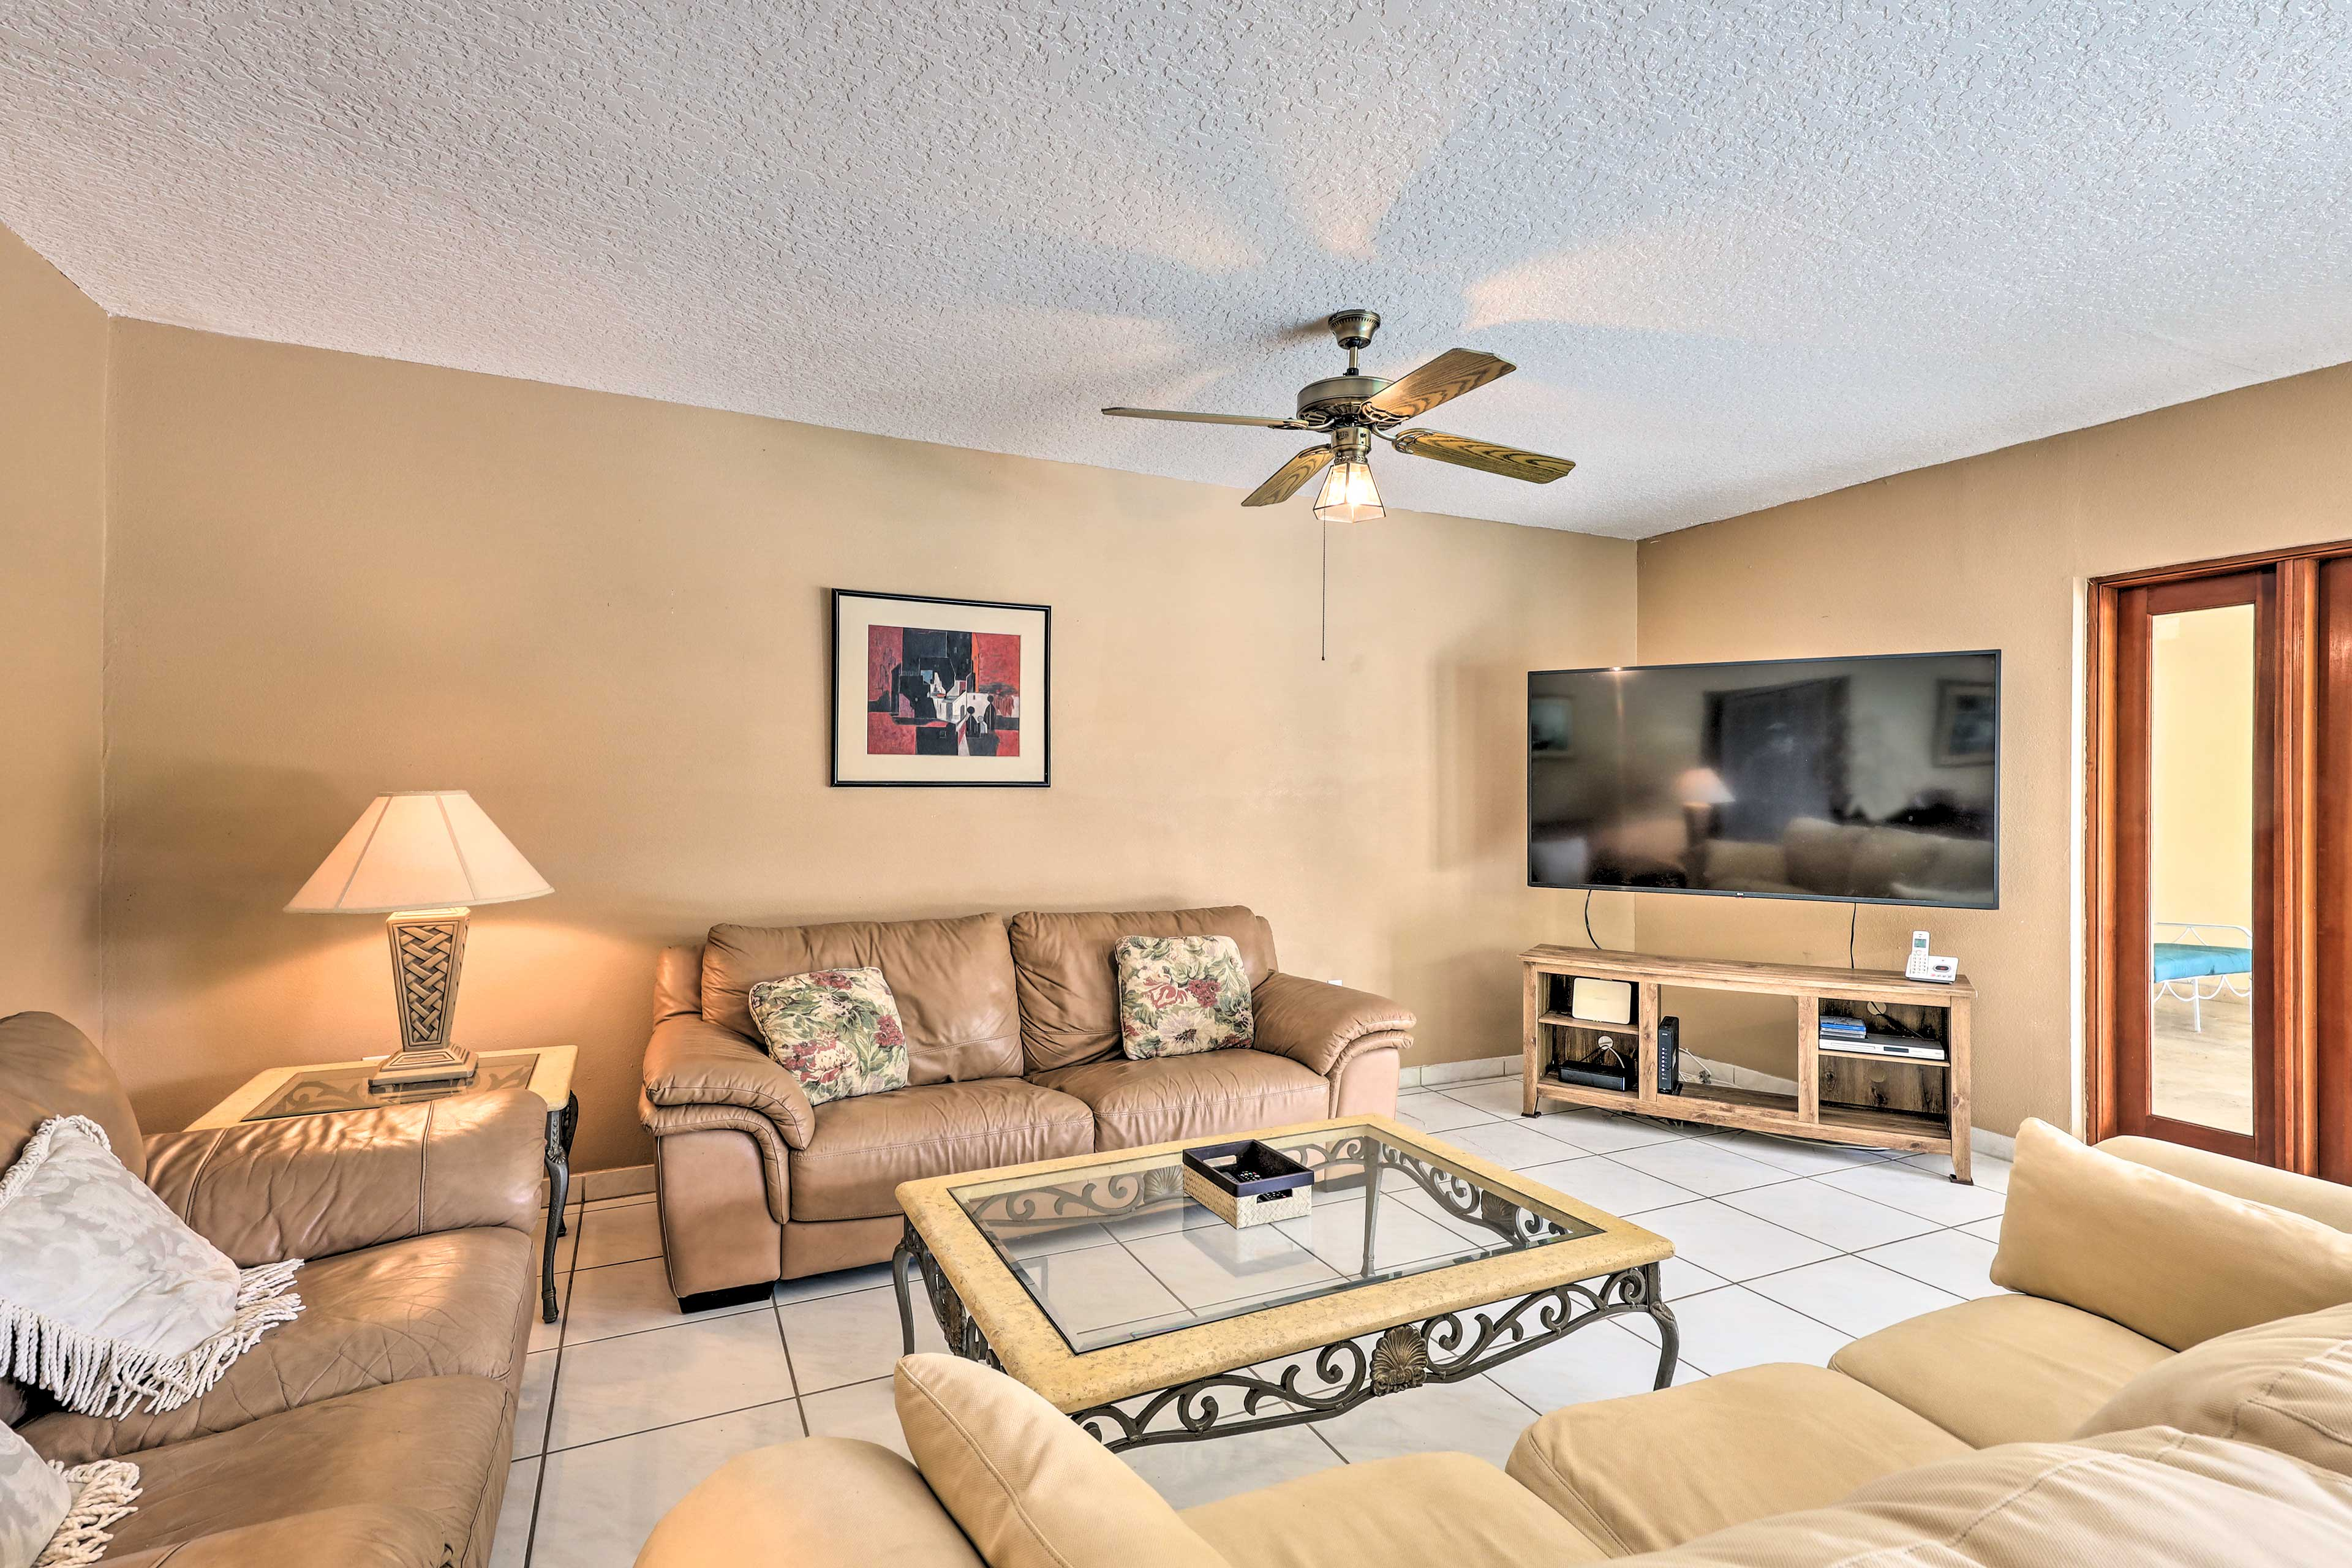 This home features a brand new 70-inch 4K TV for high-quality viewing!